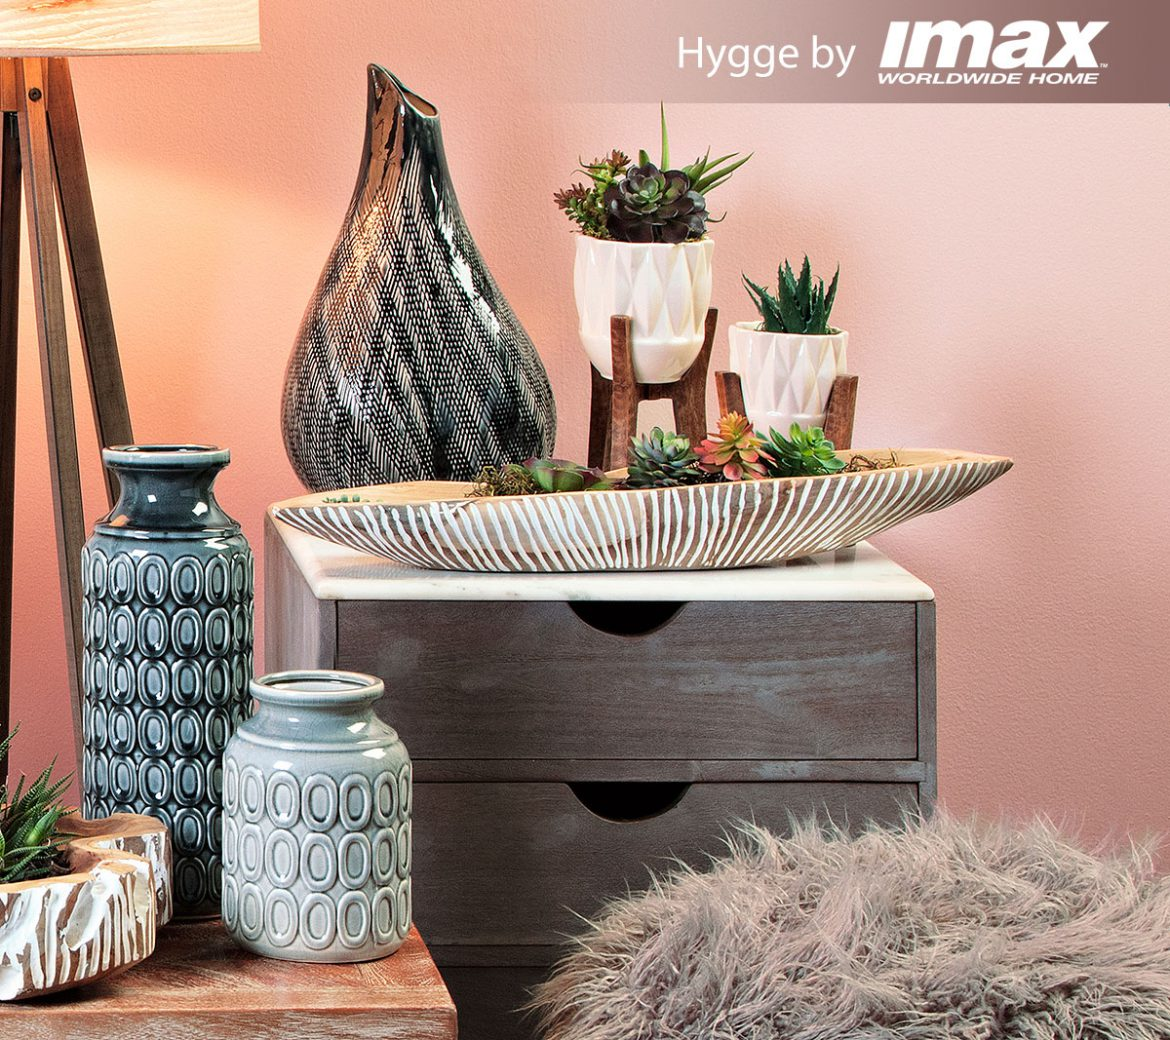 Hygge by IMAX Worldwide Home